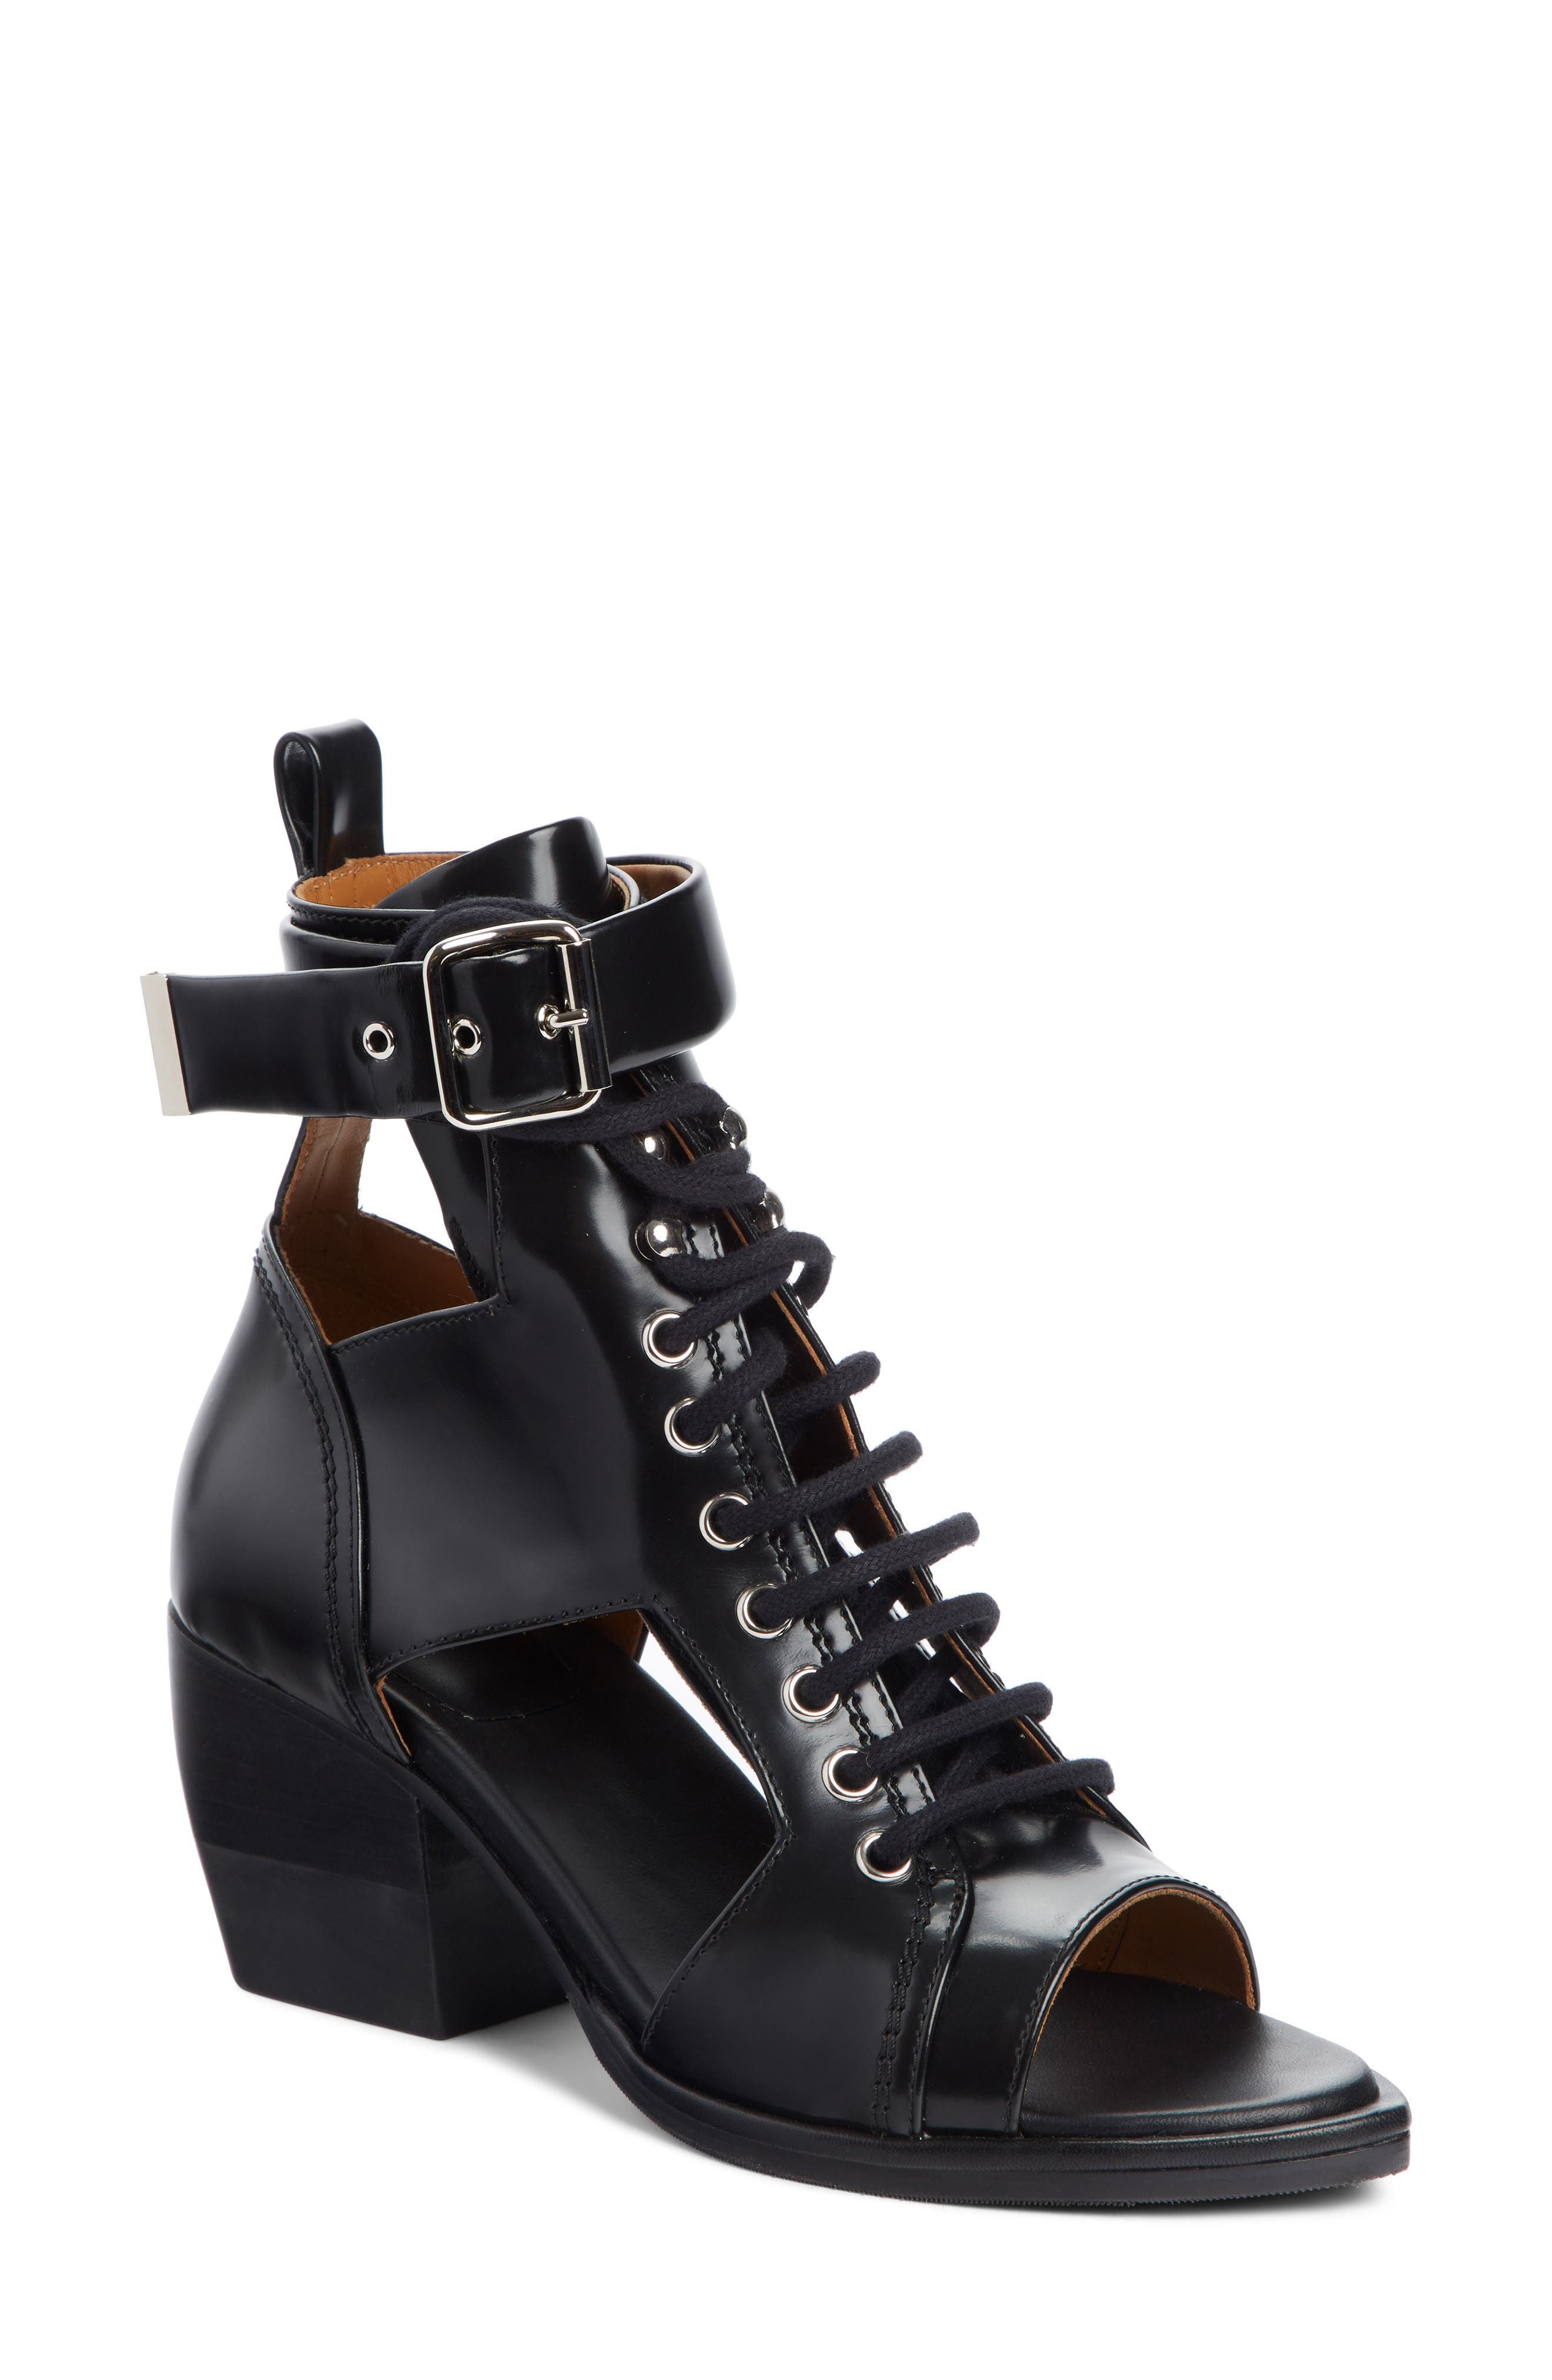 CHLOÉ Rylee Cutout Open Toe Boot, Main, color, BLACK LEATHER